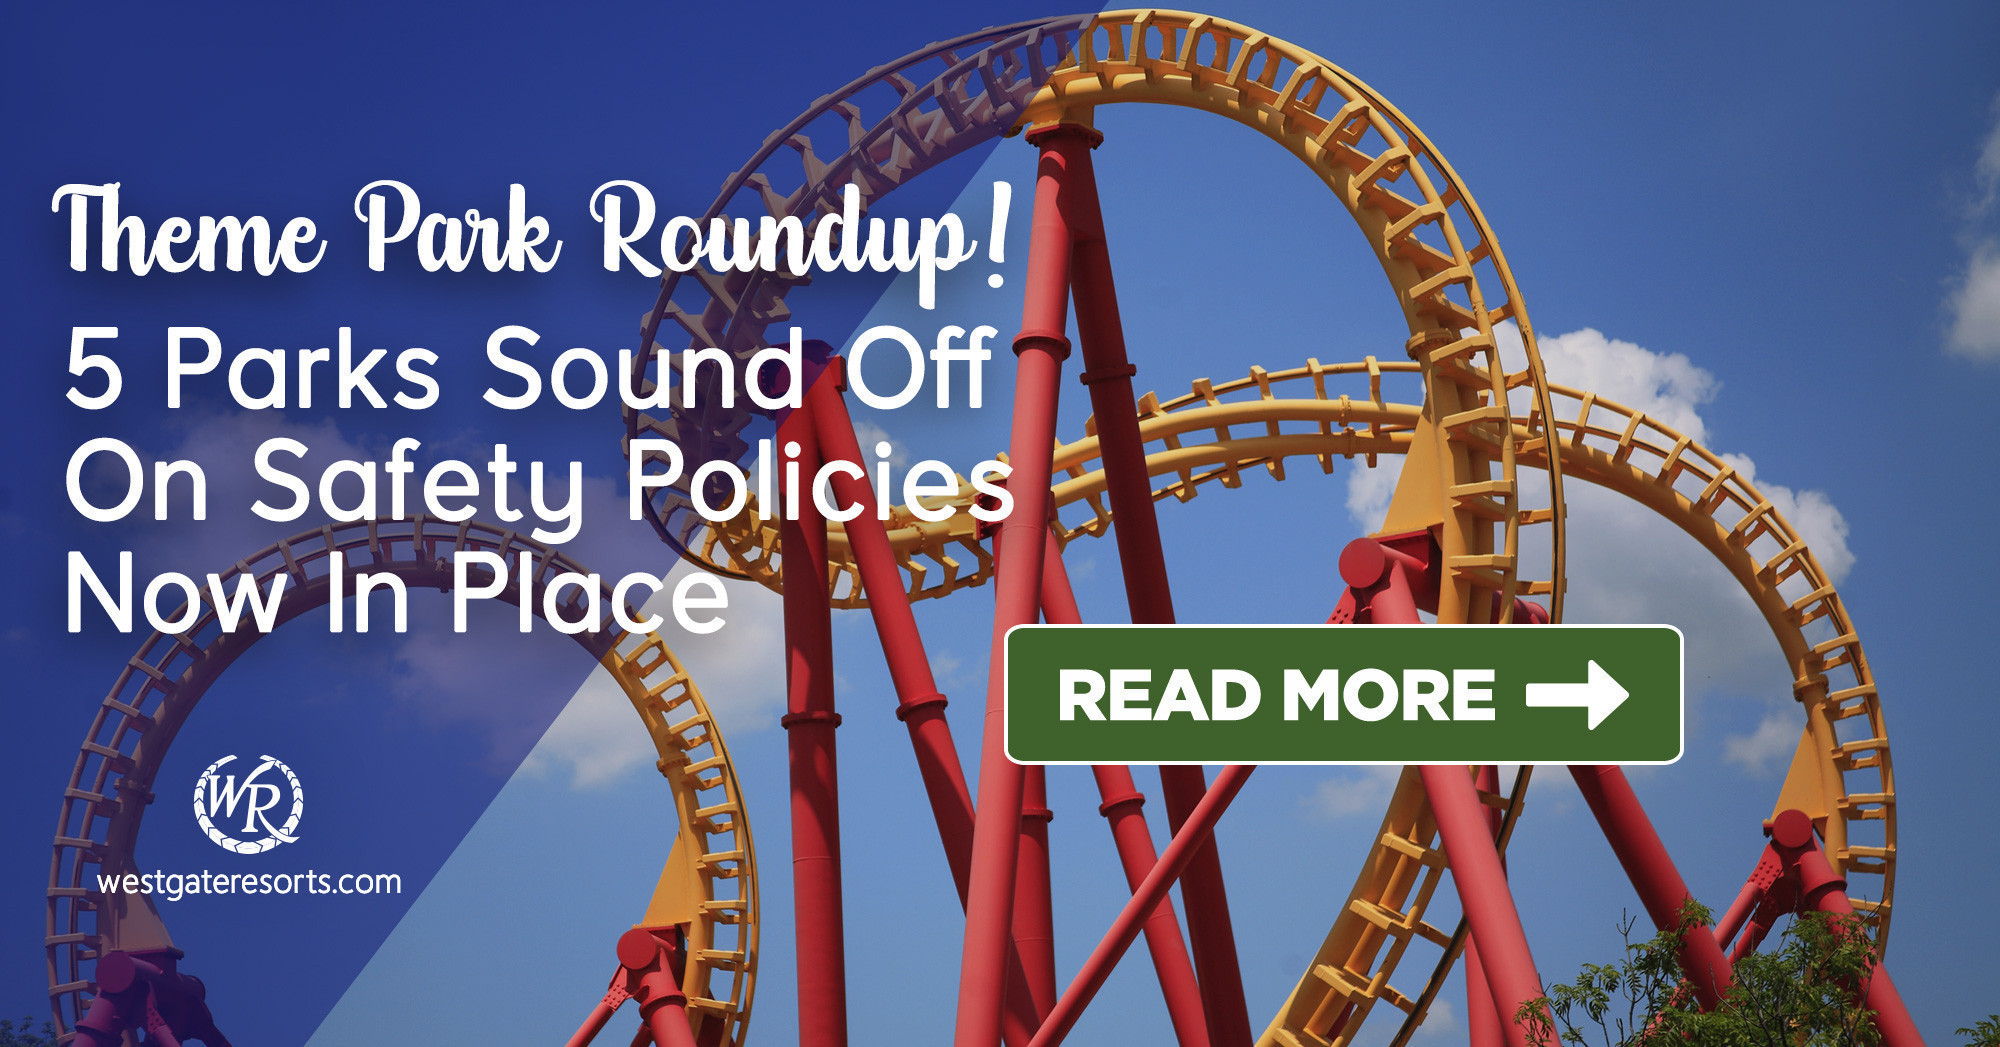 Theme Park Roundup! 5 Parks Sound Off On Safety Policies Now In Place